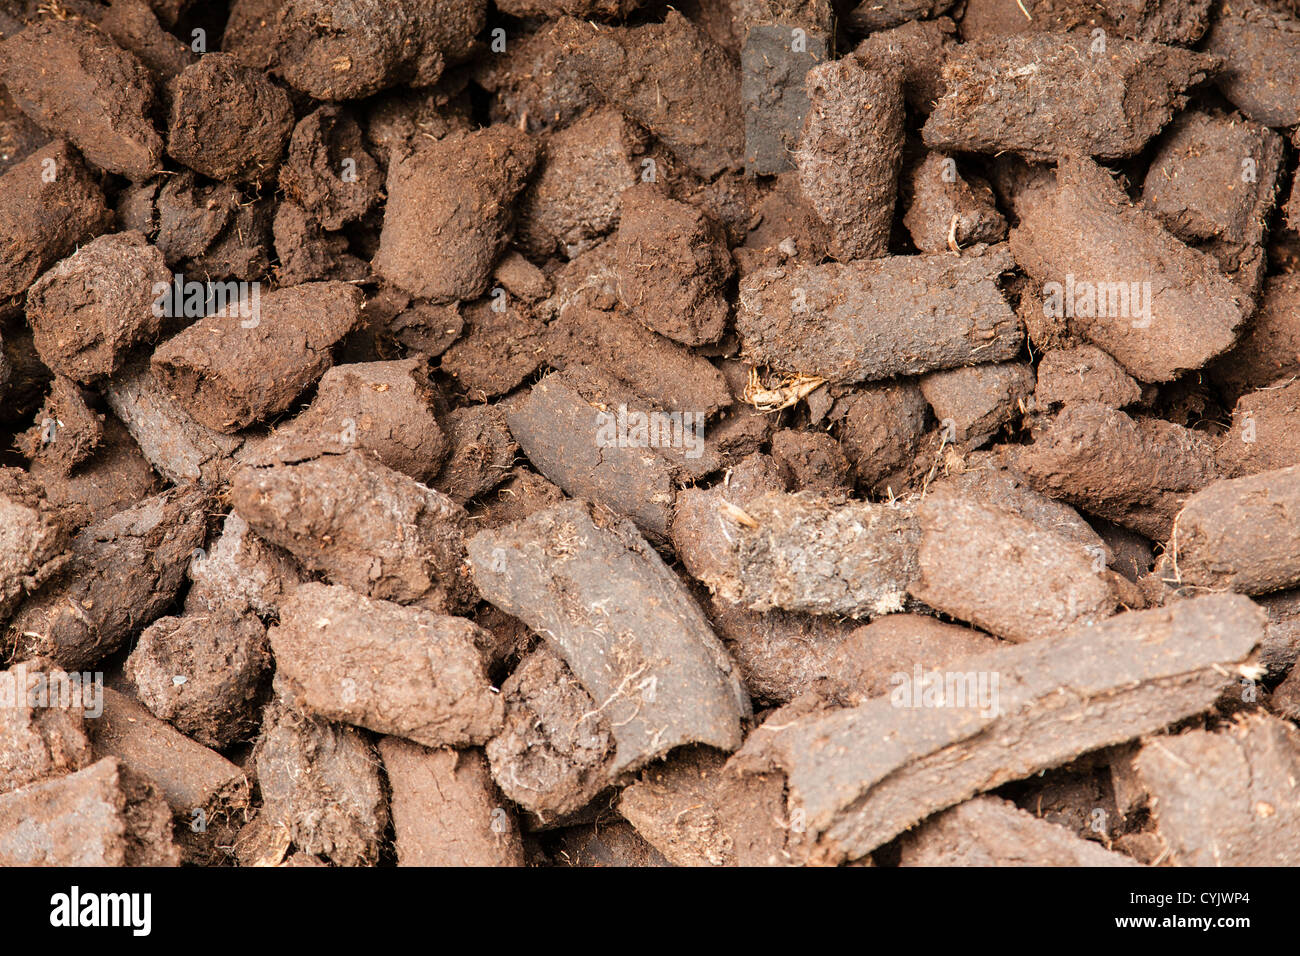 Pieces of dried peat - Stock Image